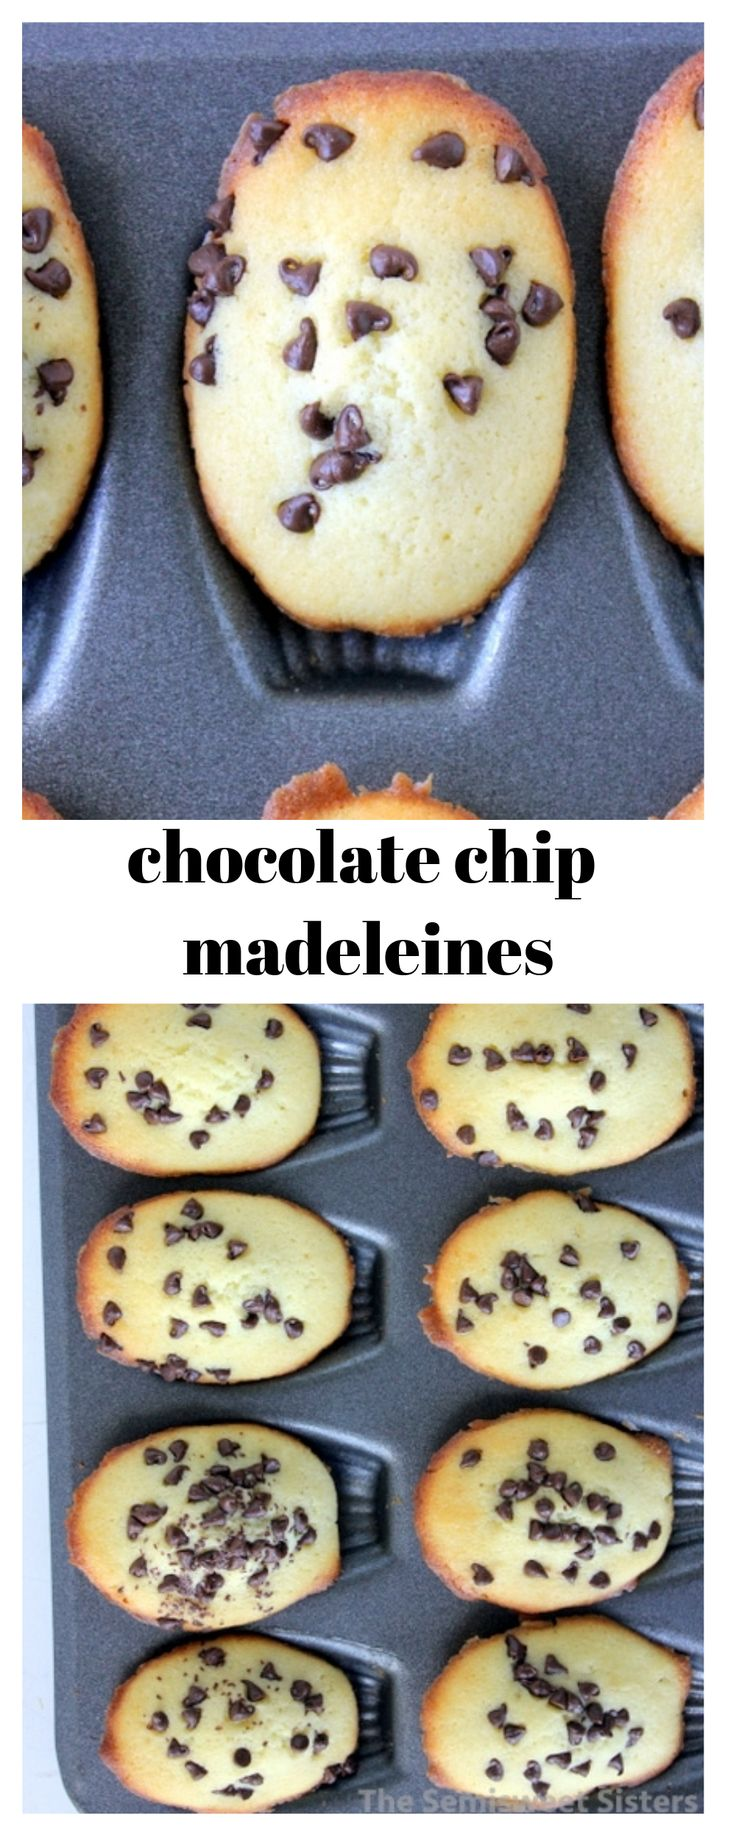 Best 25+ Madeleine ideas on Pinterest | Madeleine french ...